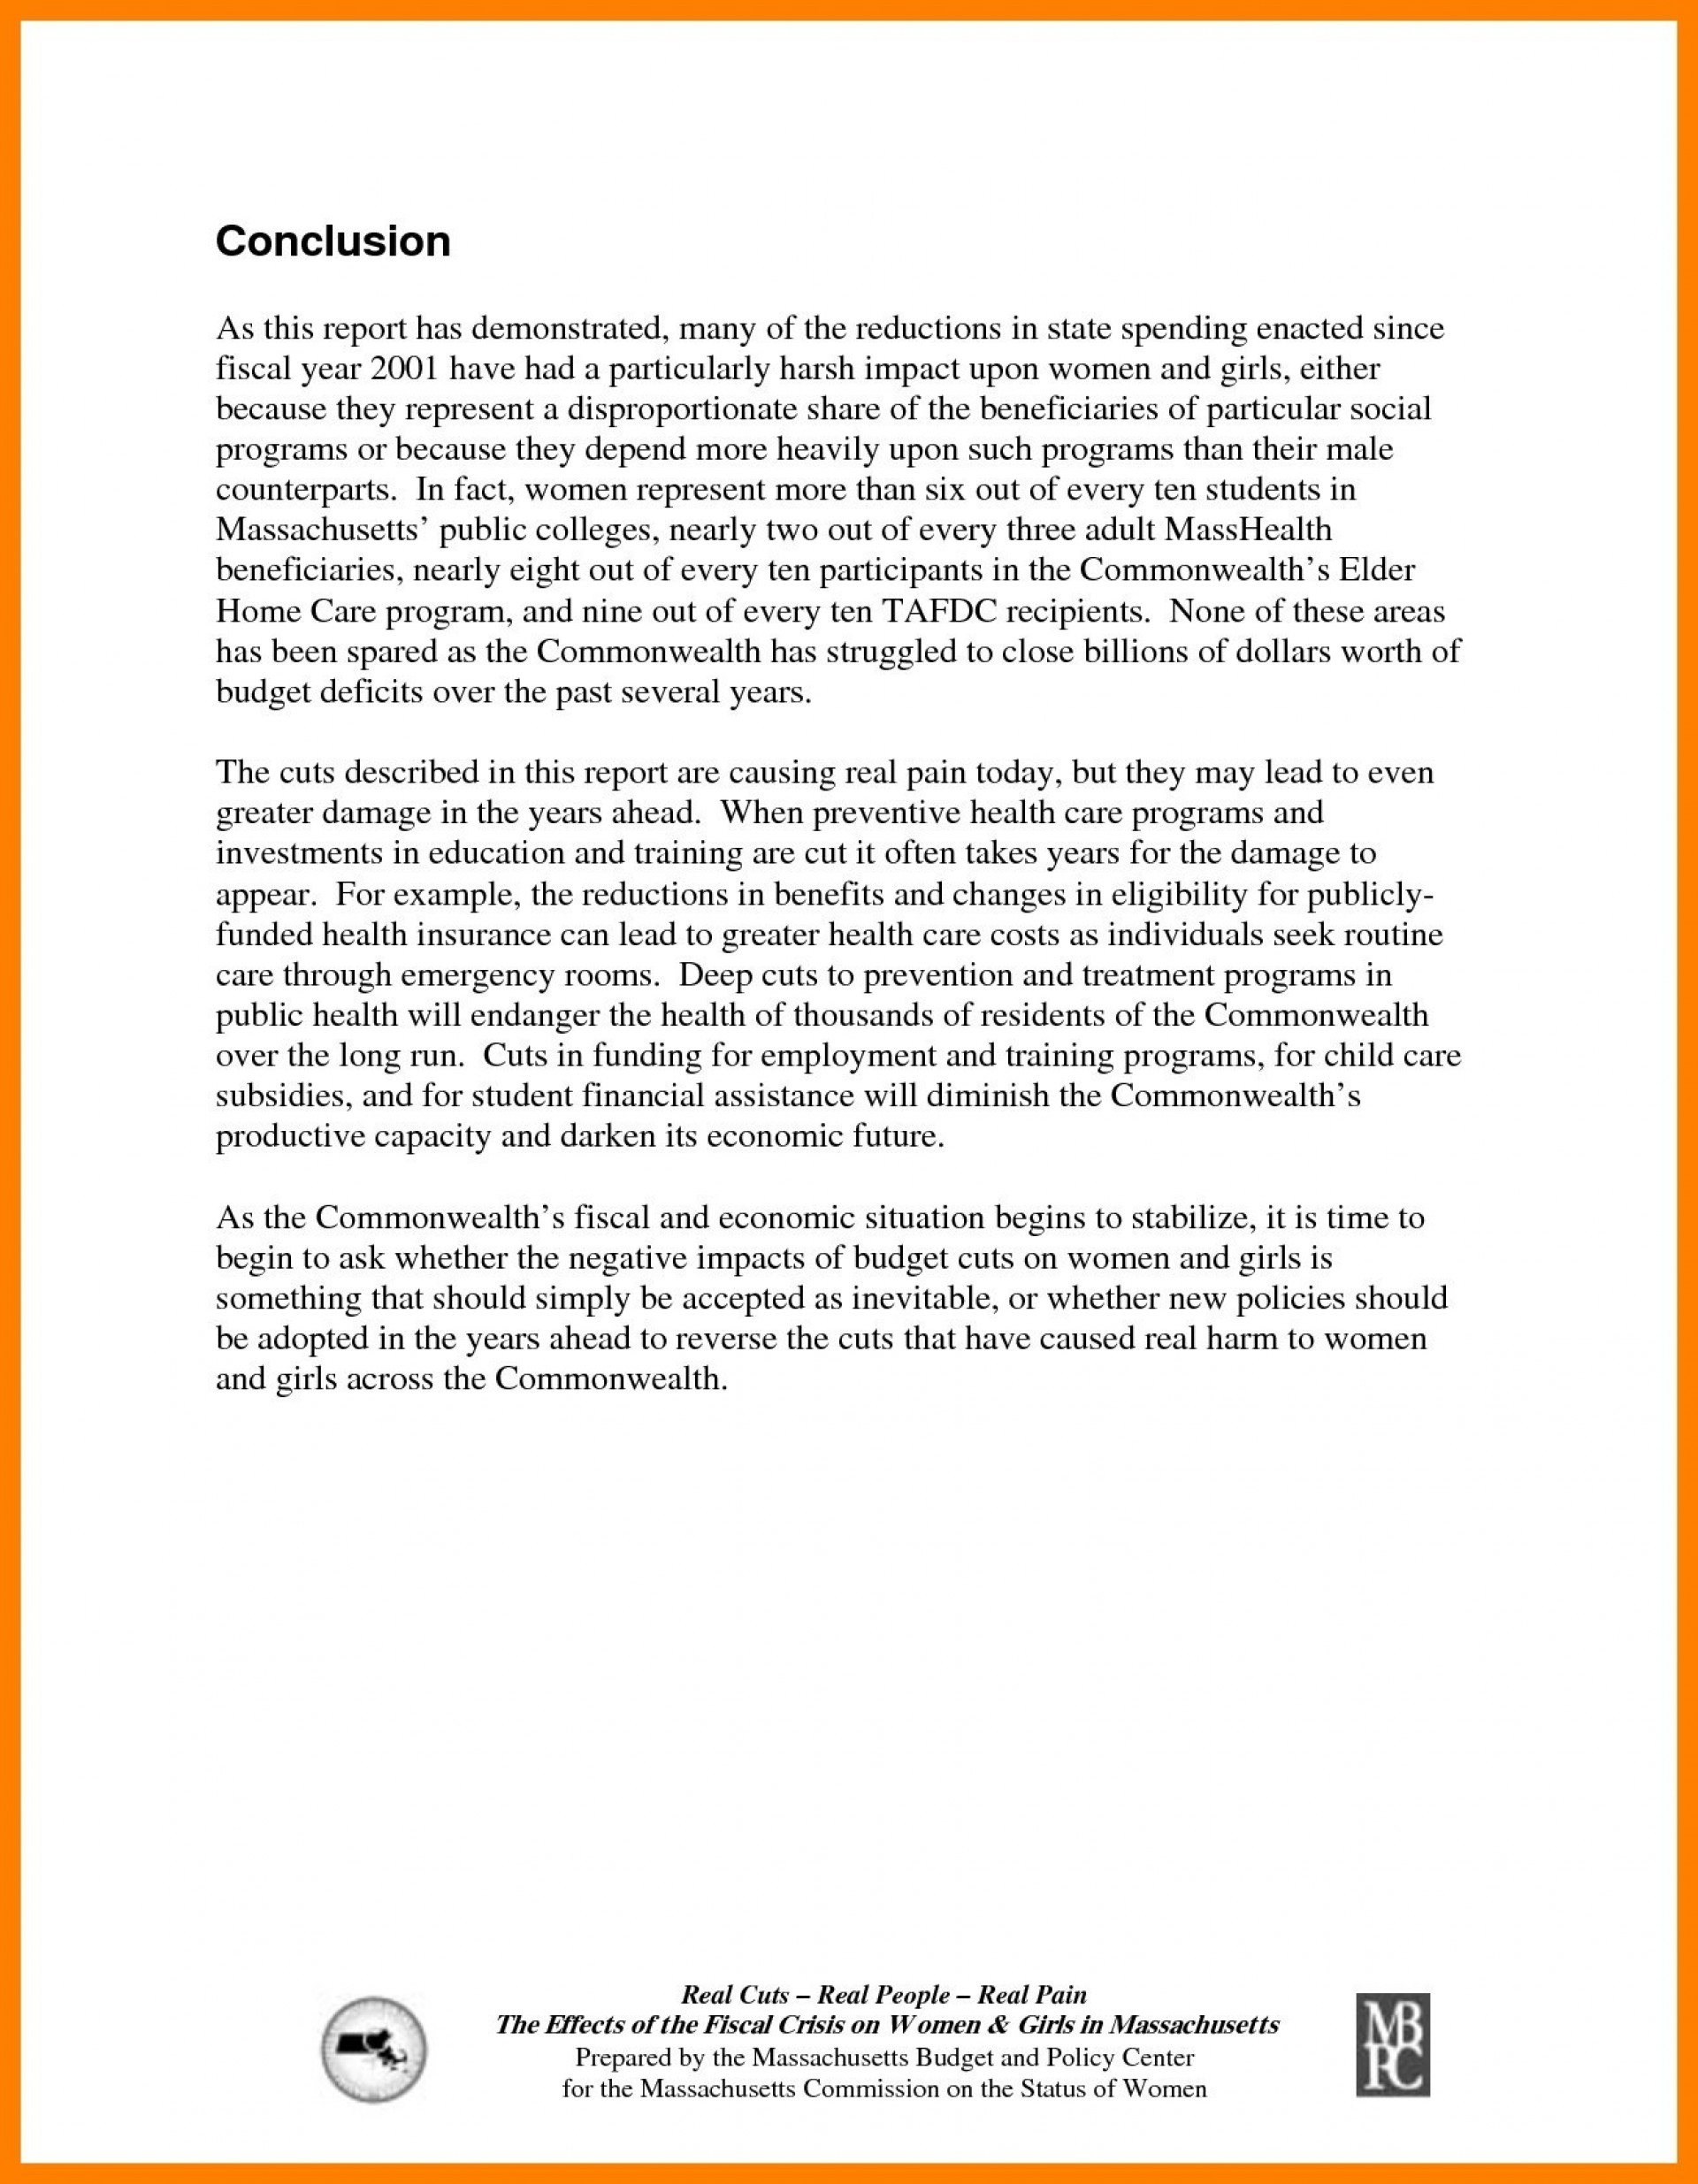 015 Research Paper Example Of Introduction In Conclusion Essay For An Argumentative Pdf Pare And Contrast P About Bullying Psychology Education Unique Business Cyberbullying 1920